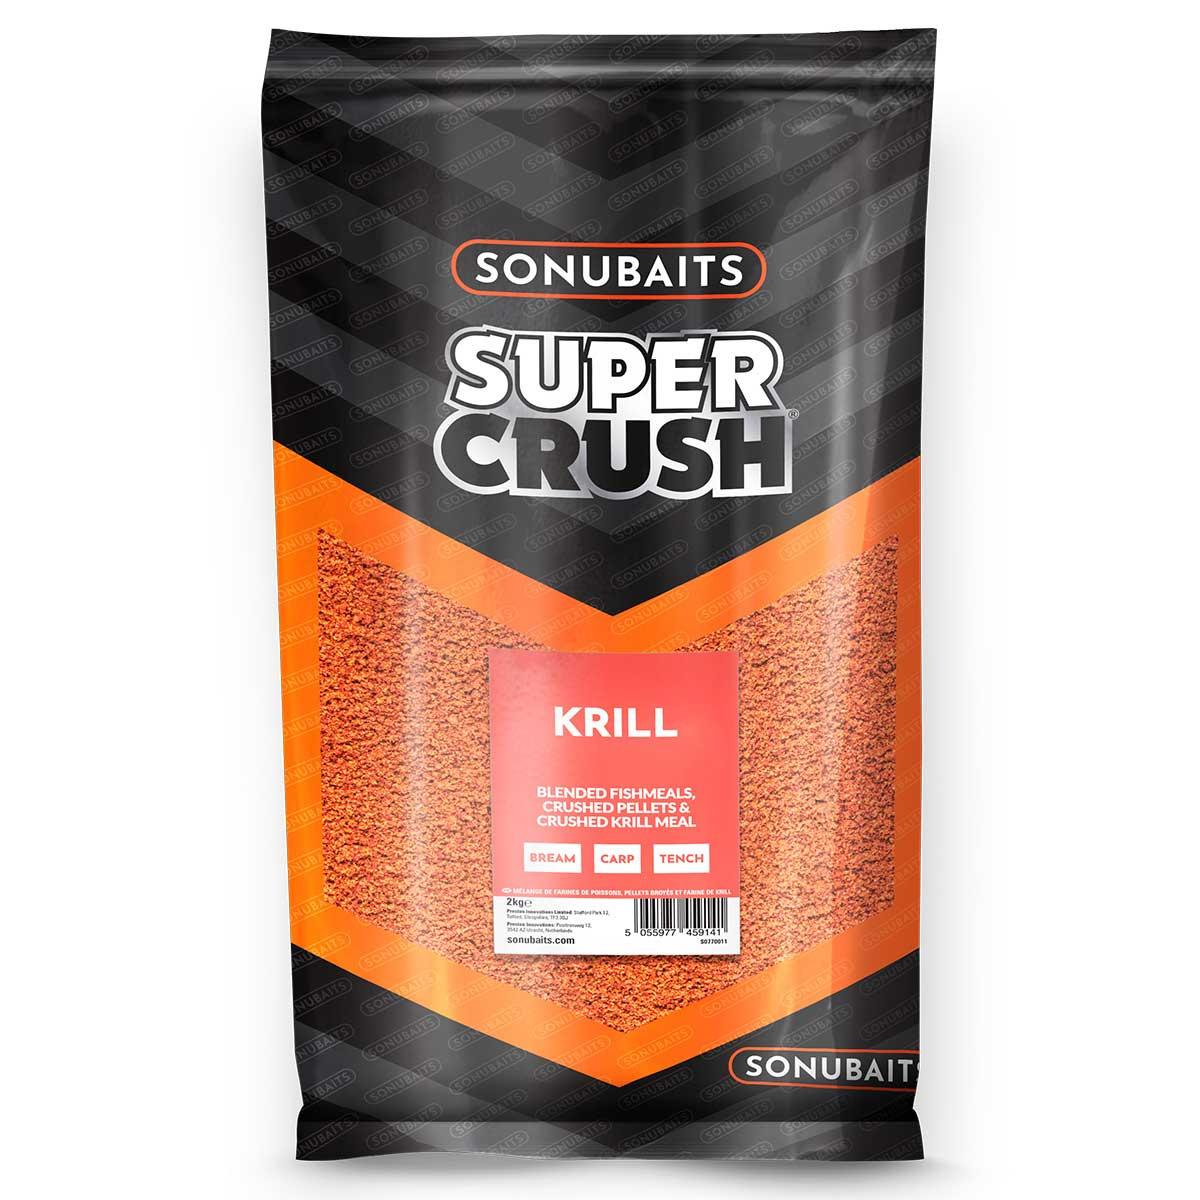 Sonubaits Super Crush Krill